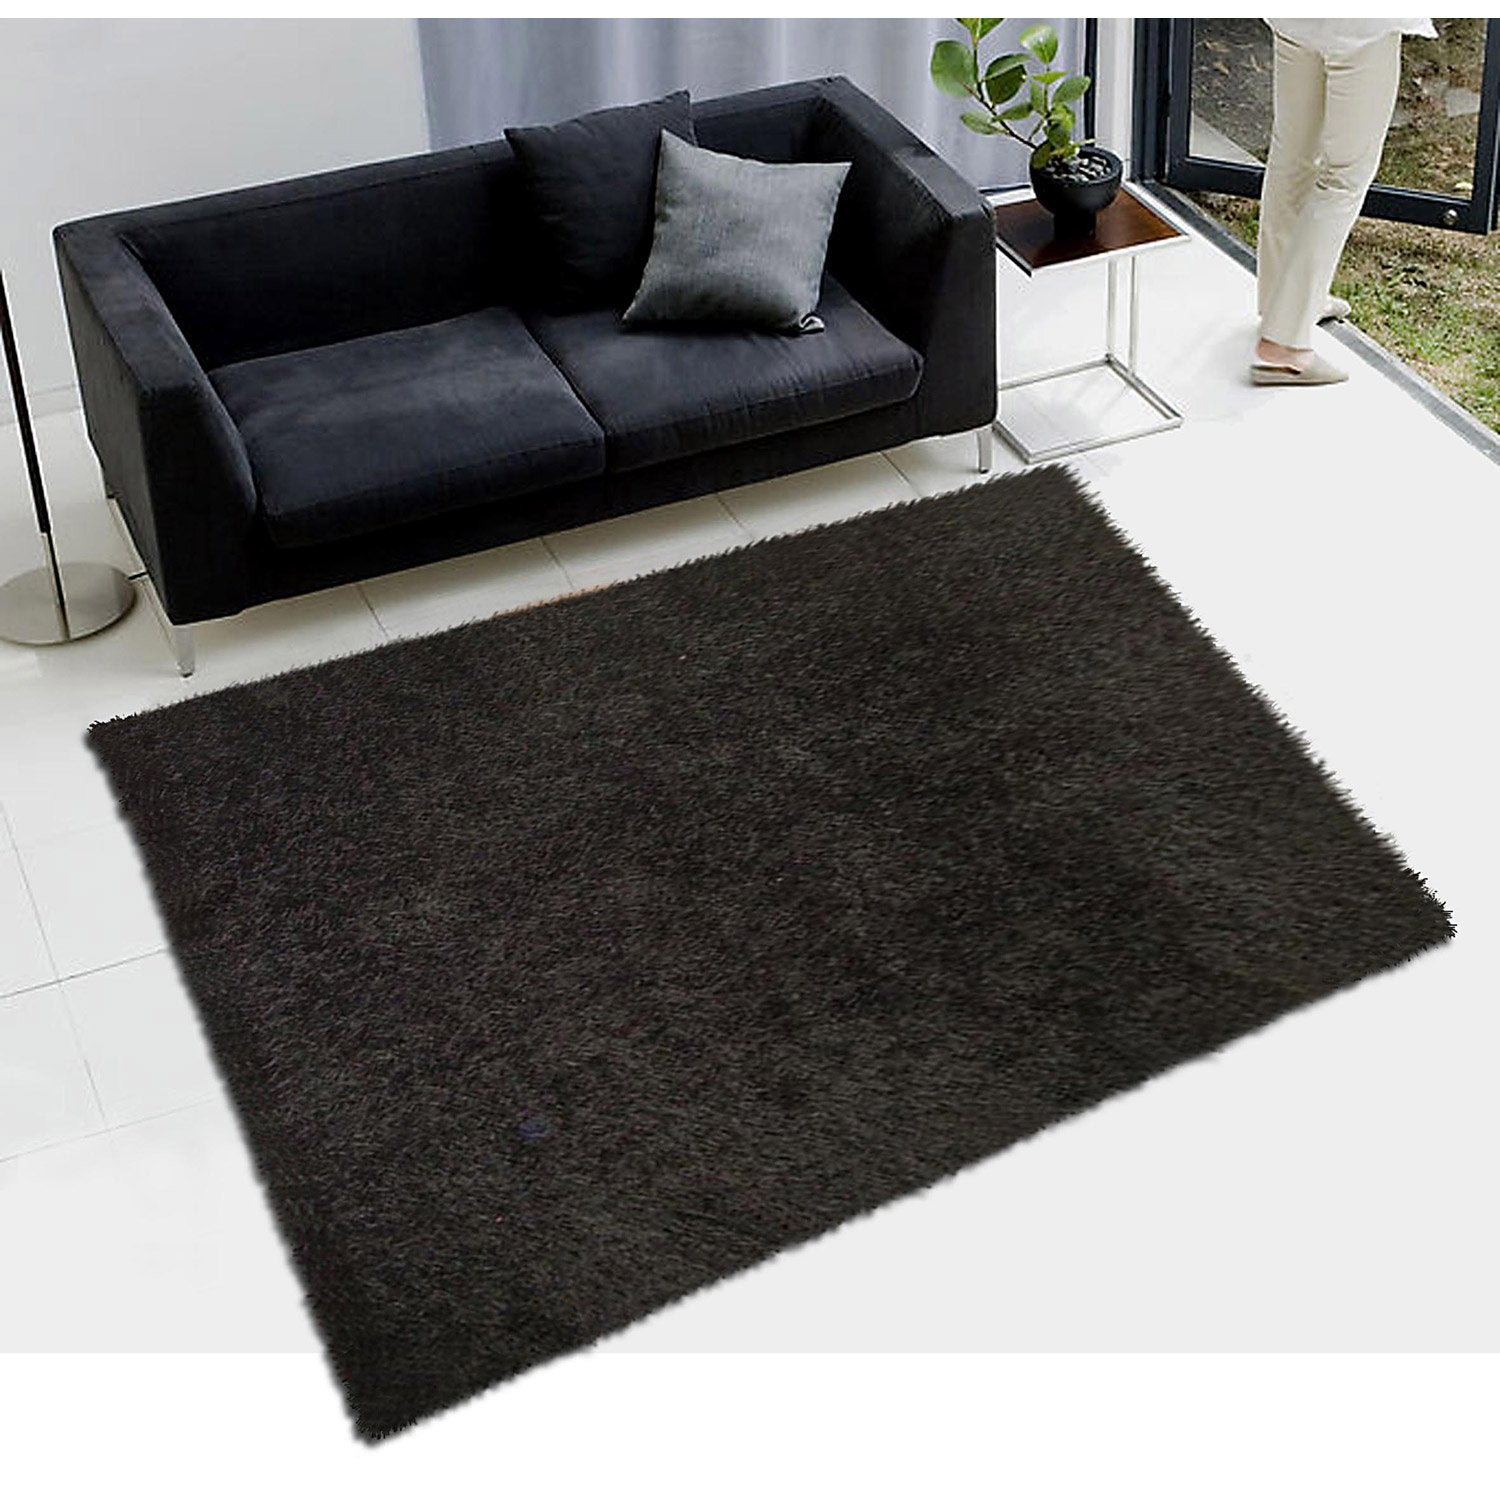 tapis noir shaggy lilou x cm leroy merlin. Black Bedroom Furniture Sets. Home Design Ideas